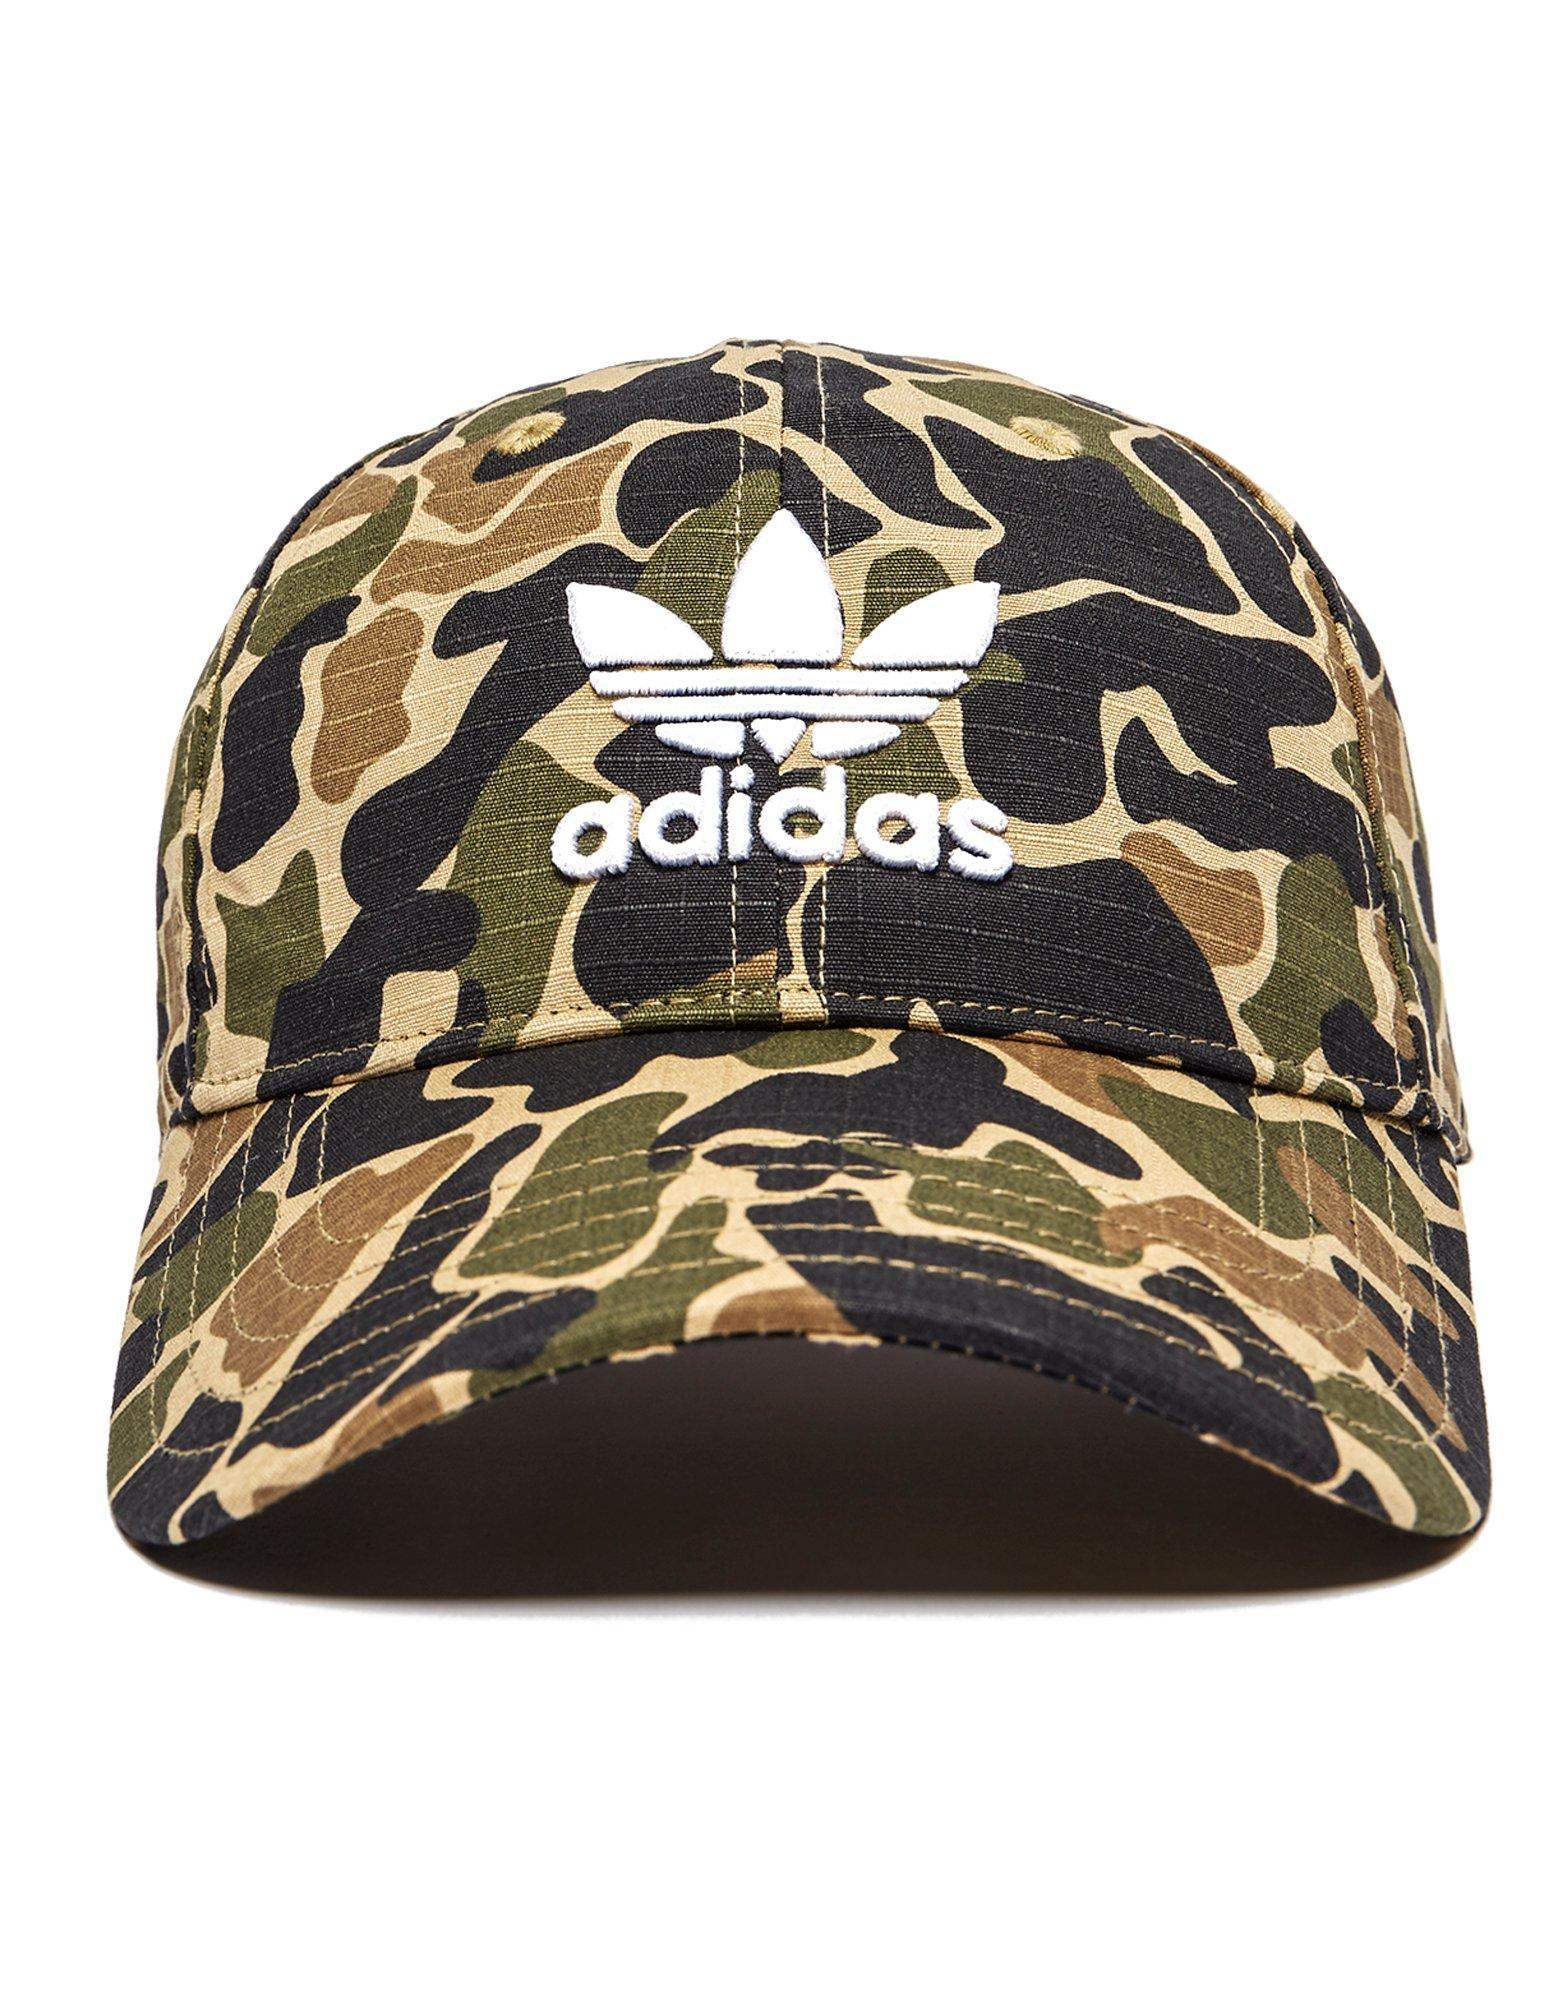 low price best deals on new products Adidas Originals Green Trefoil Classic Cap for men